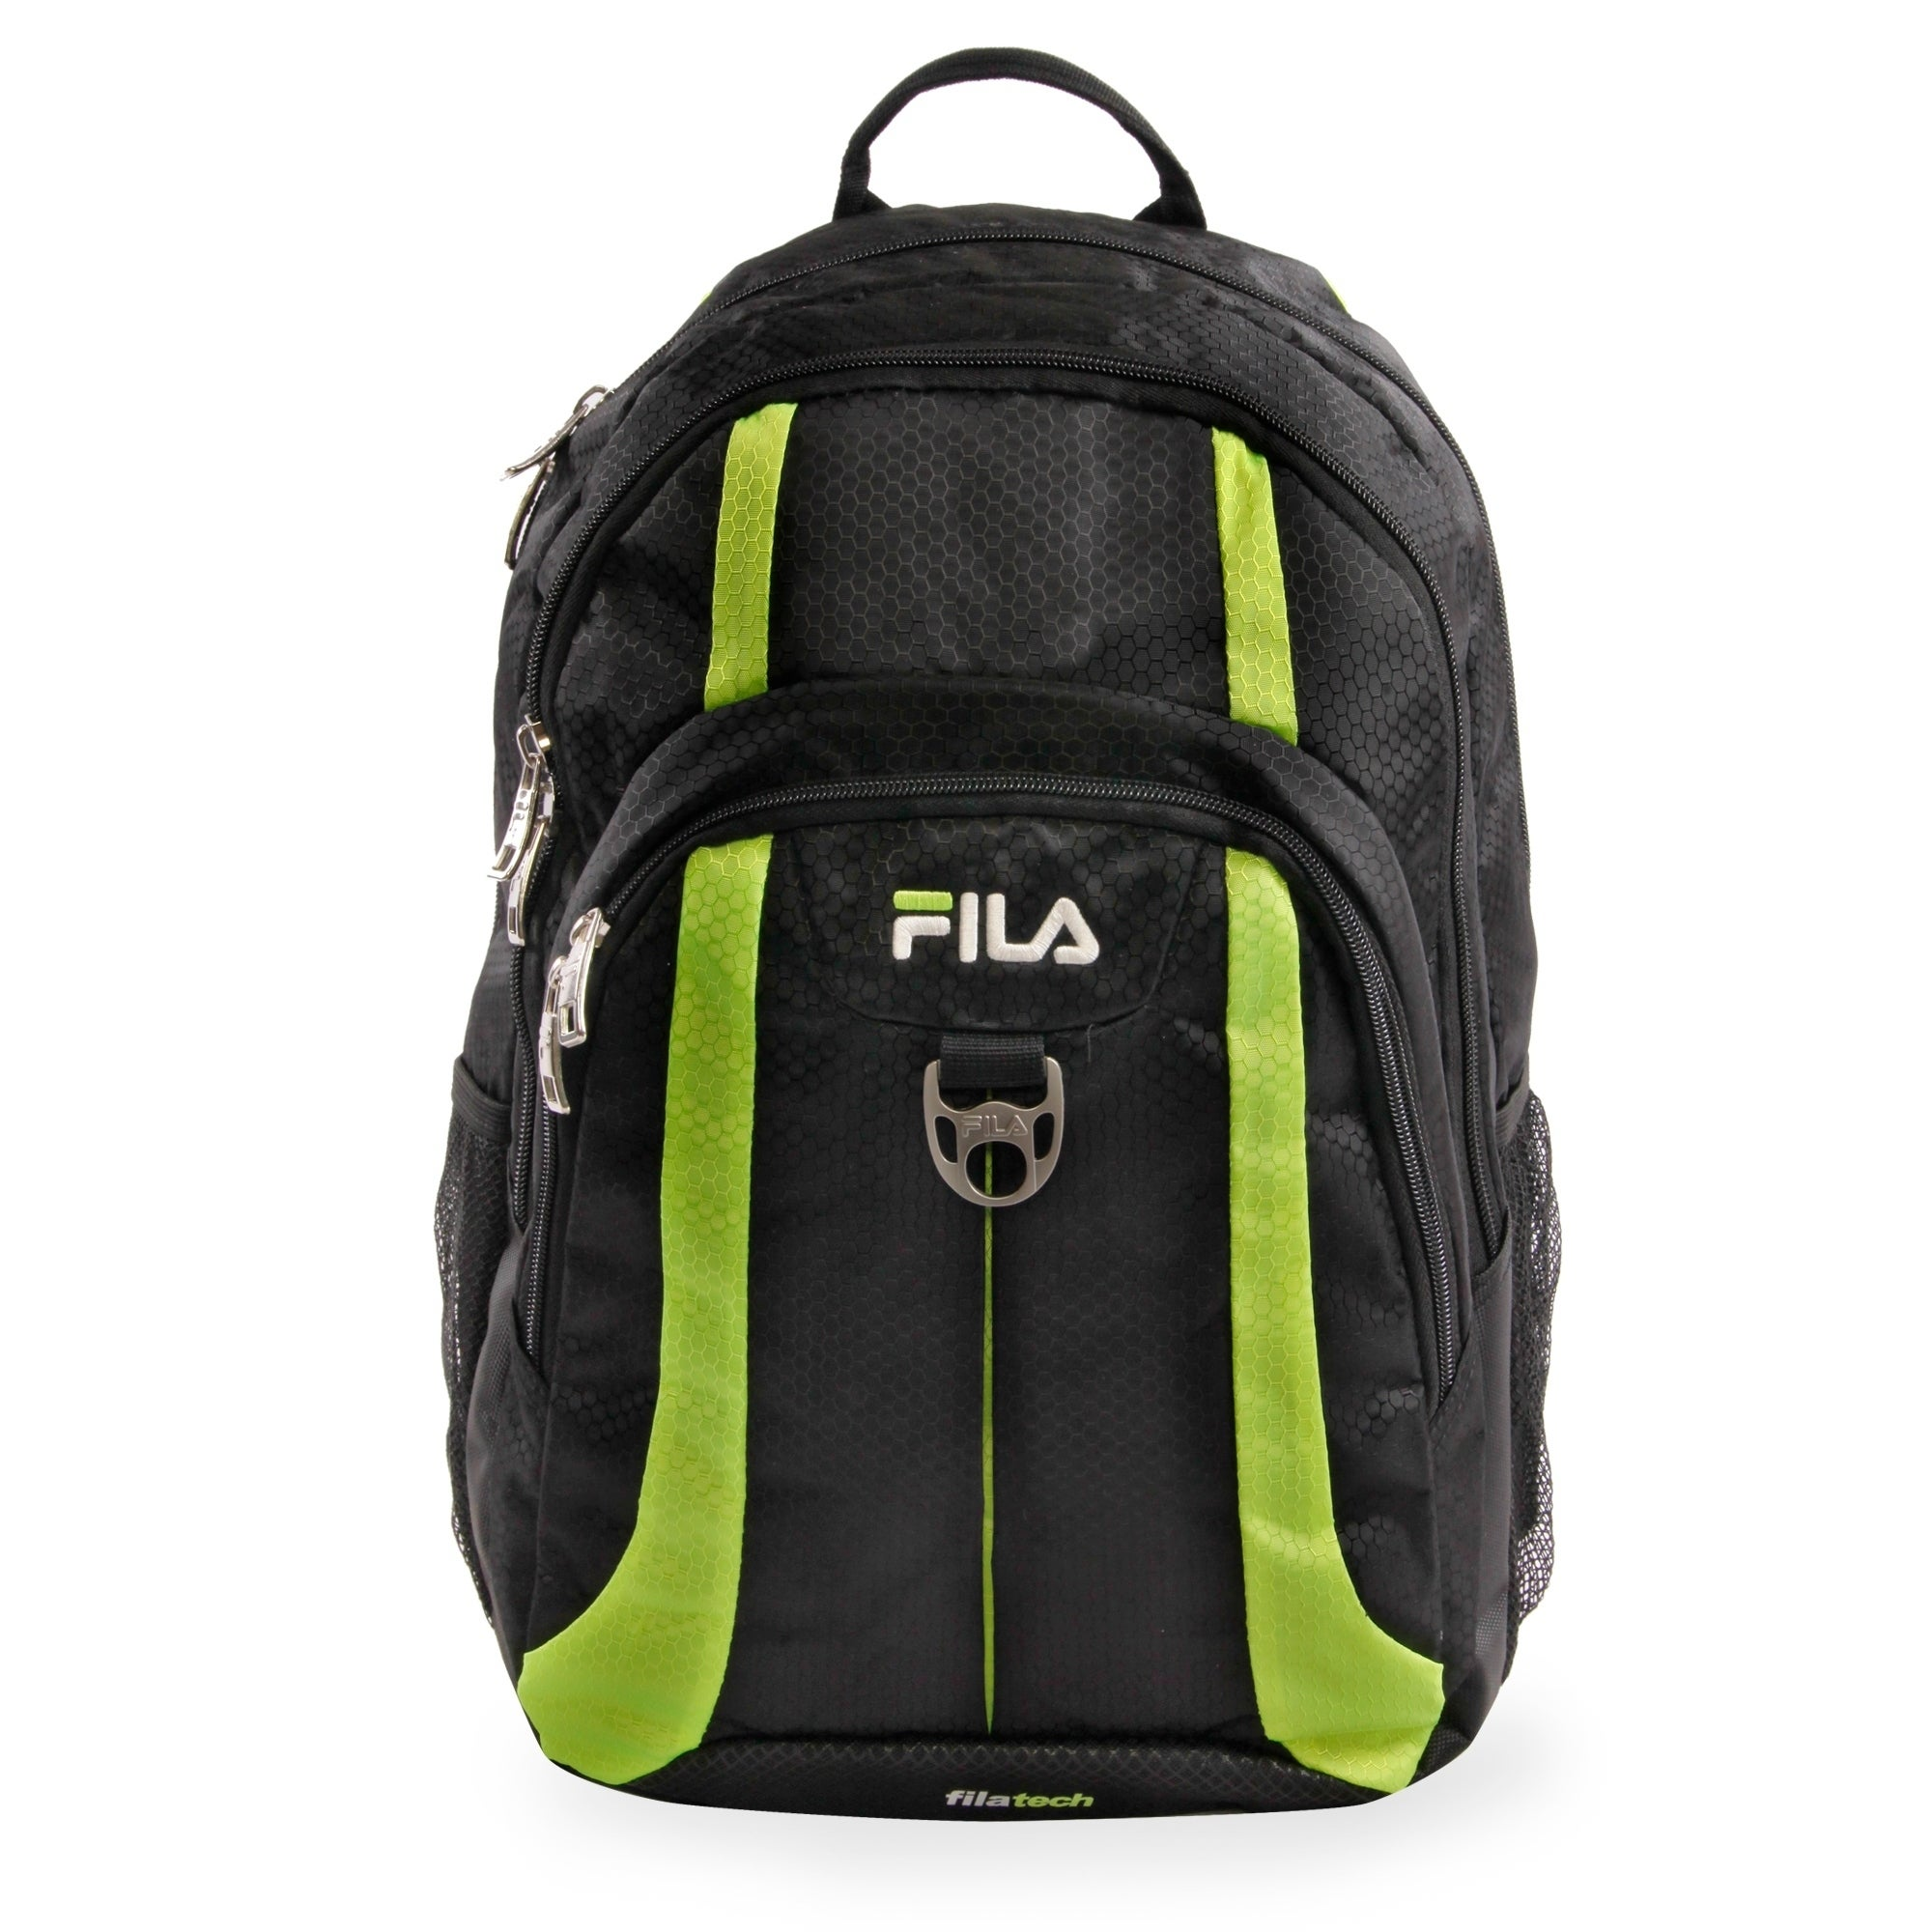 Shop Fila Edge 15-In Laptop Backpack with Tablet compartment - Free  Shipping On Orders Over  45 - Overstock.com - 21134992